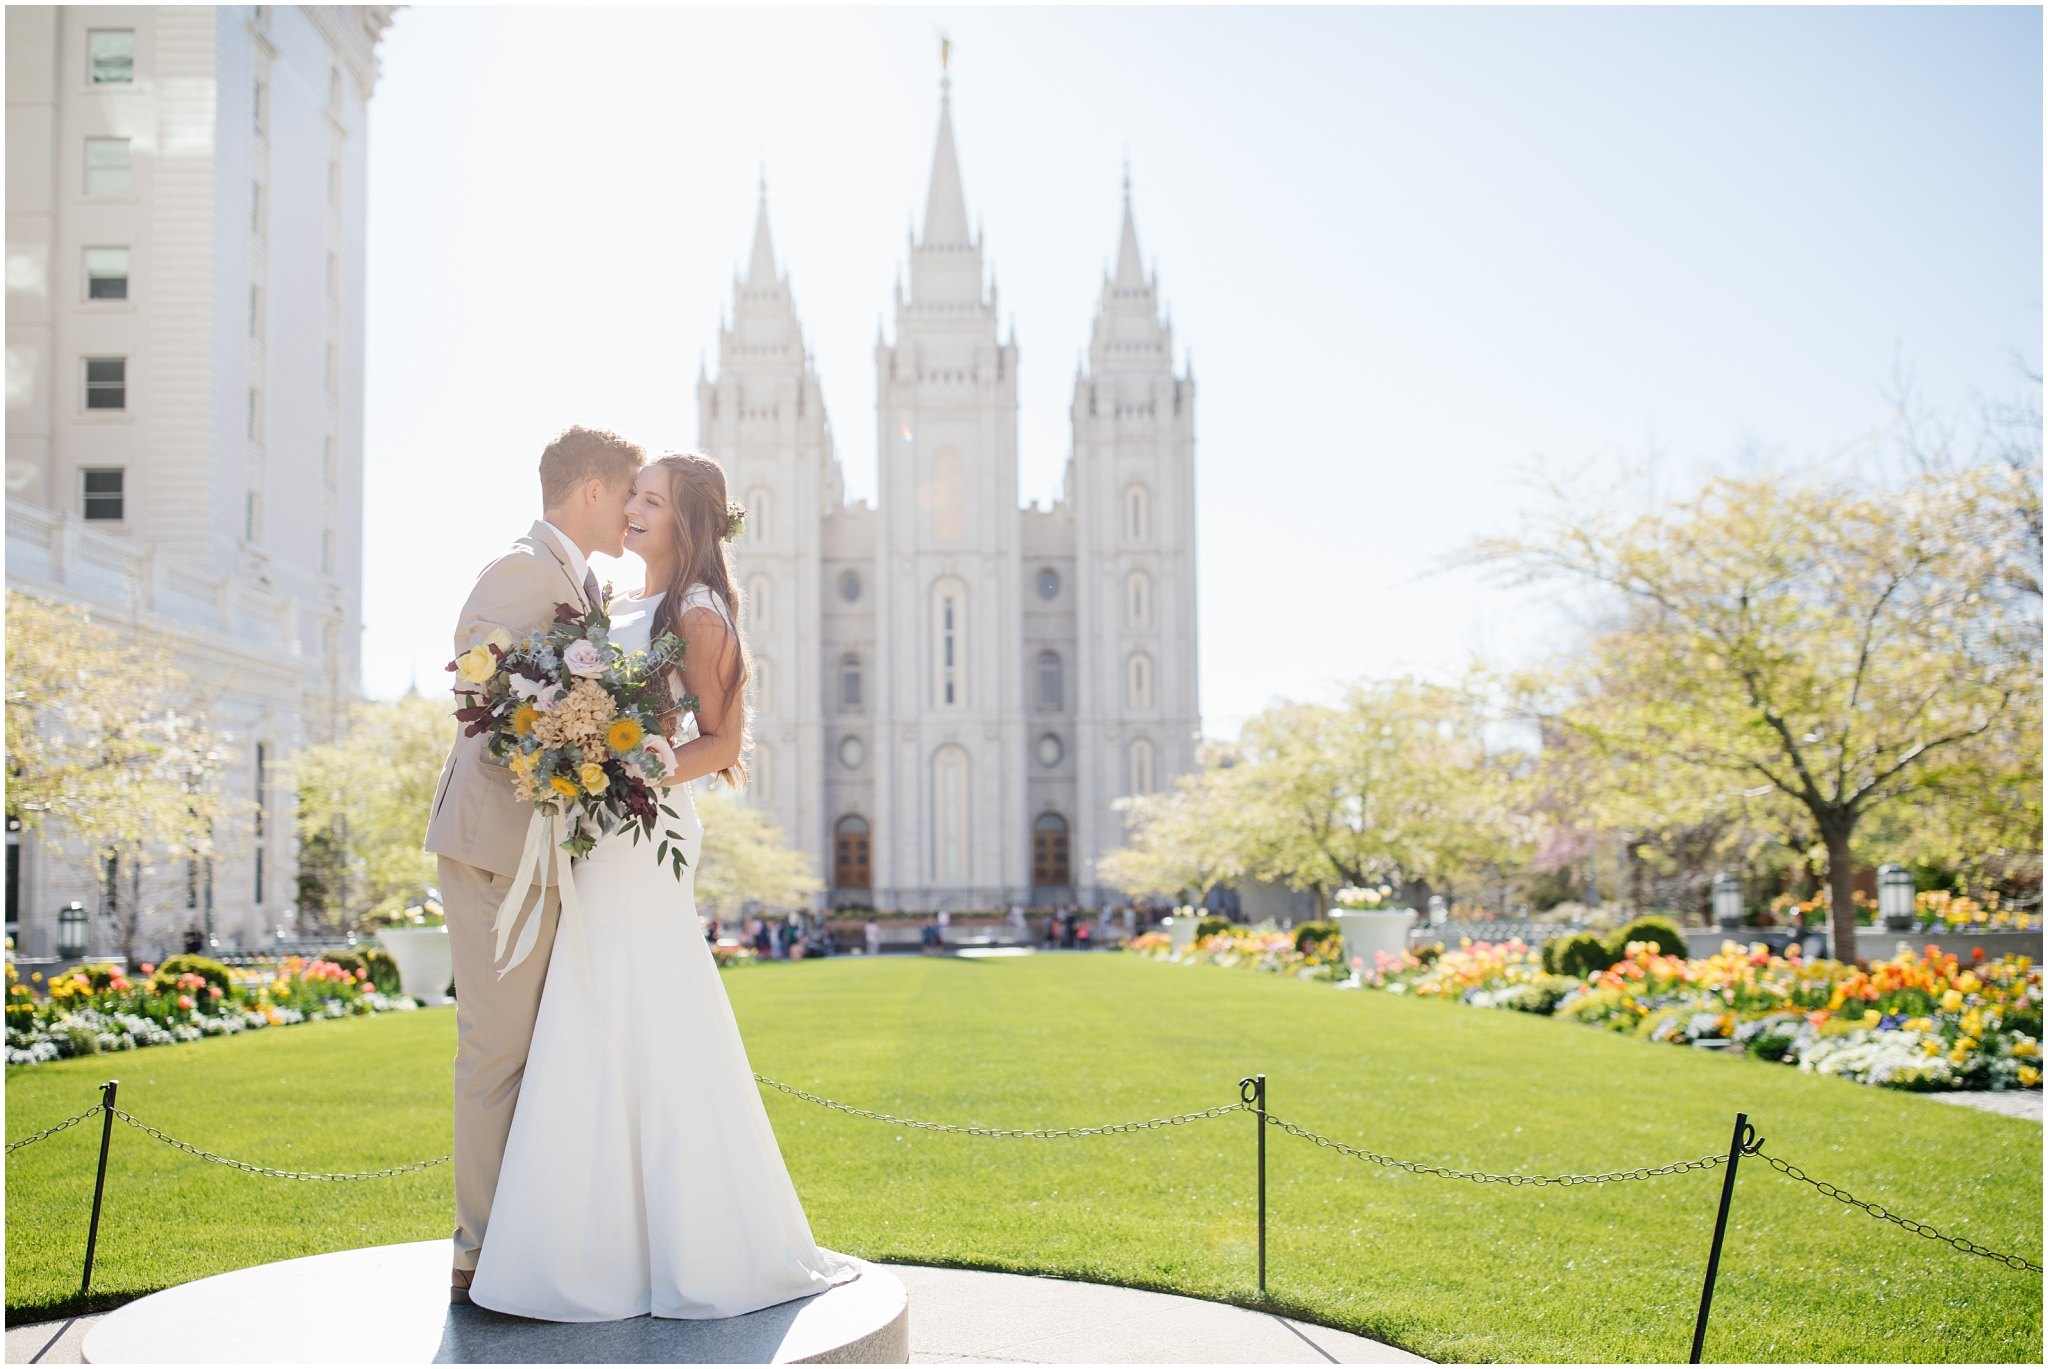 JC-Wedding-218_Lizzie-B-Imagery-Utah-Wedding-Photographer-Salt-Lake-City-Temple-Joseph-Smith-Memorial-Building-Reception.jpg